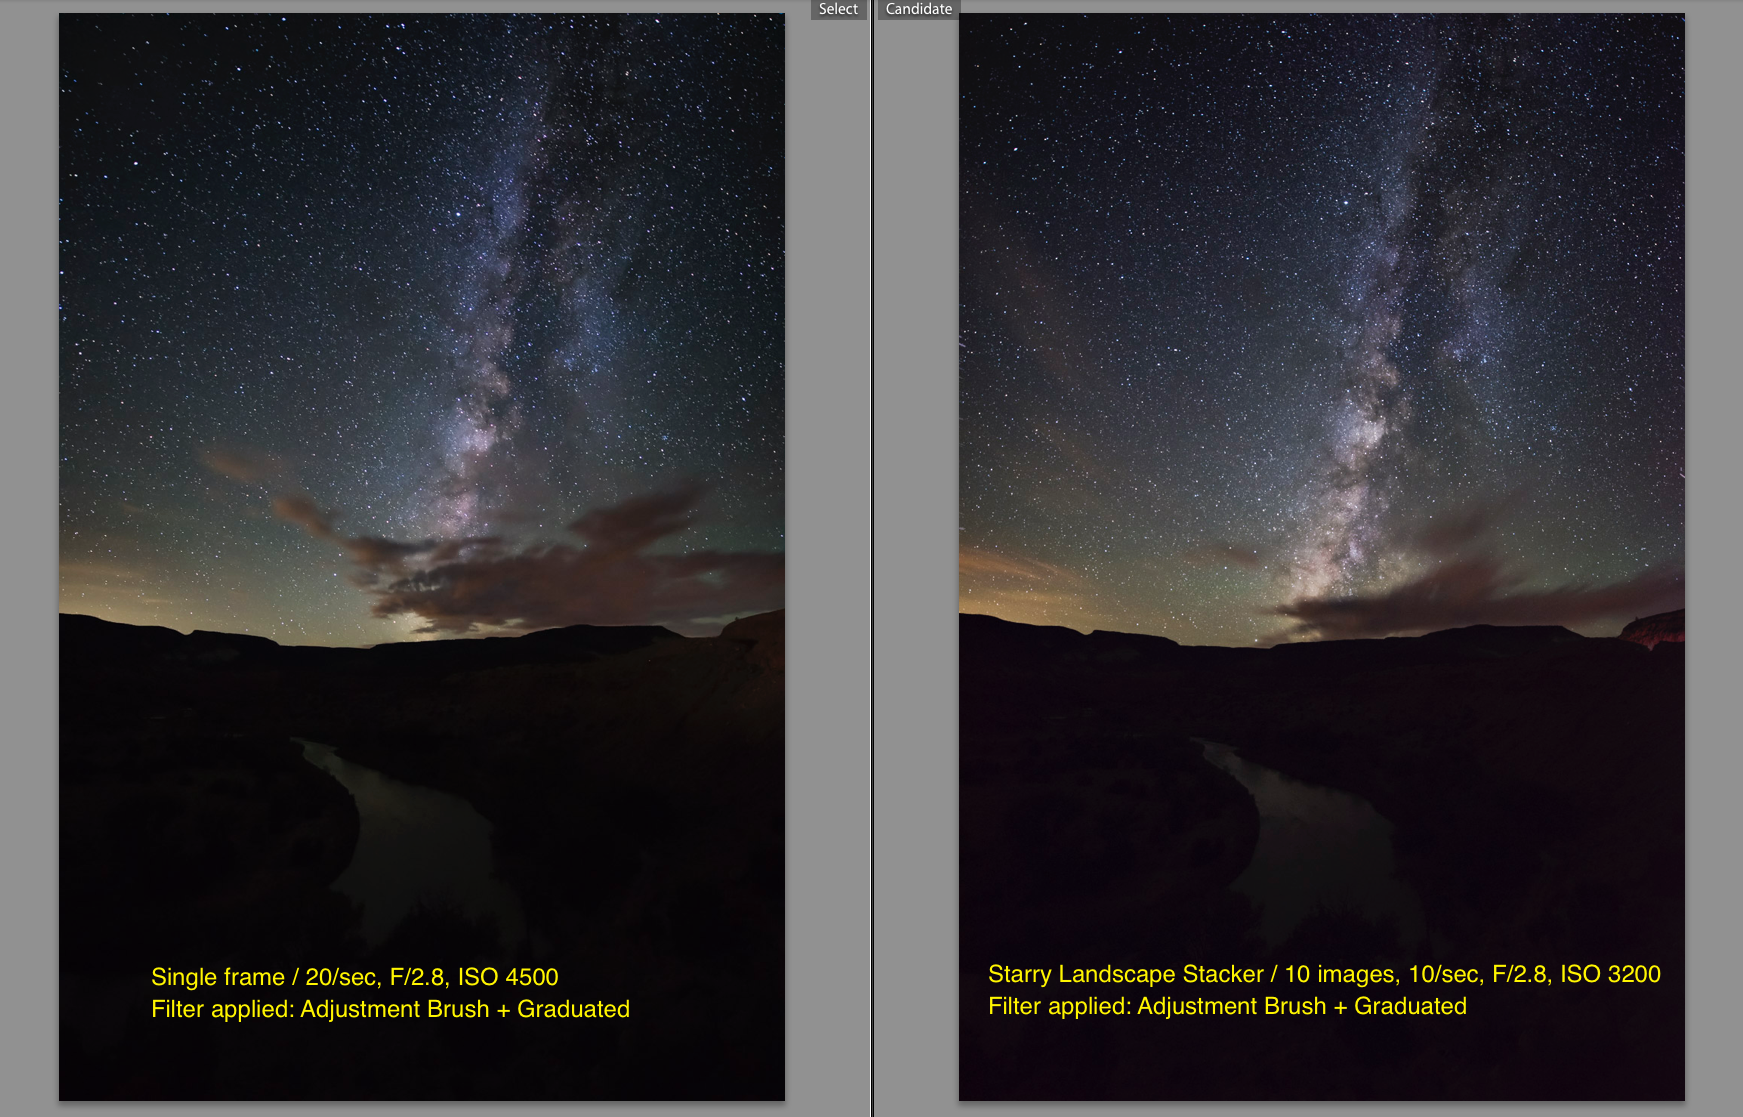 Single image on left and SLS file on right